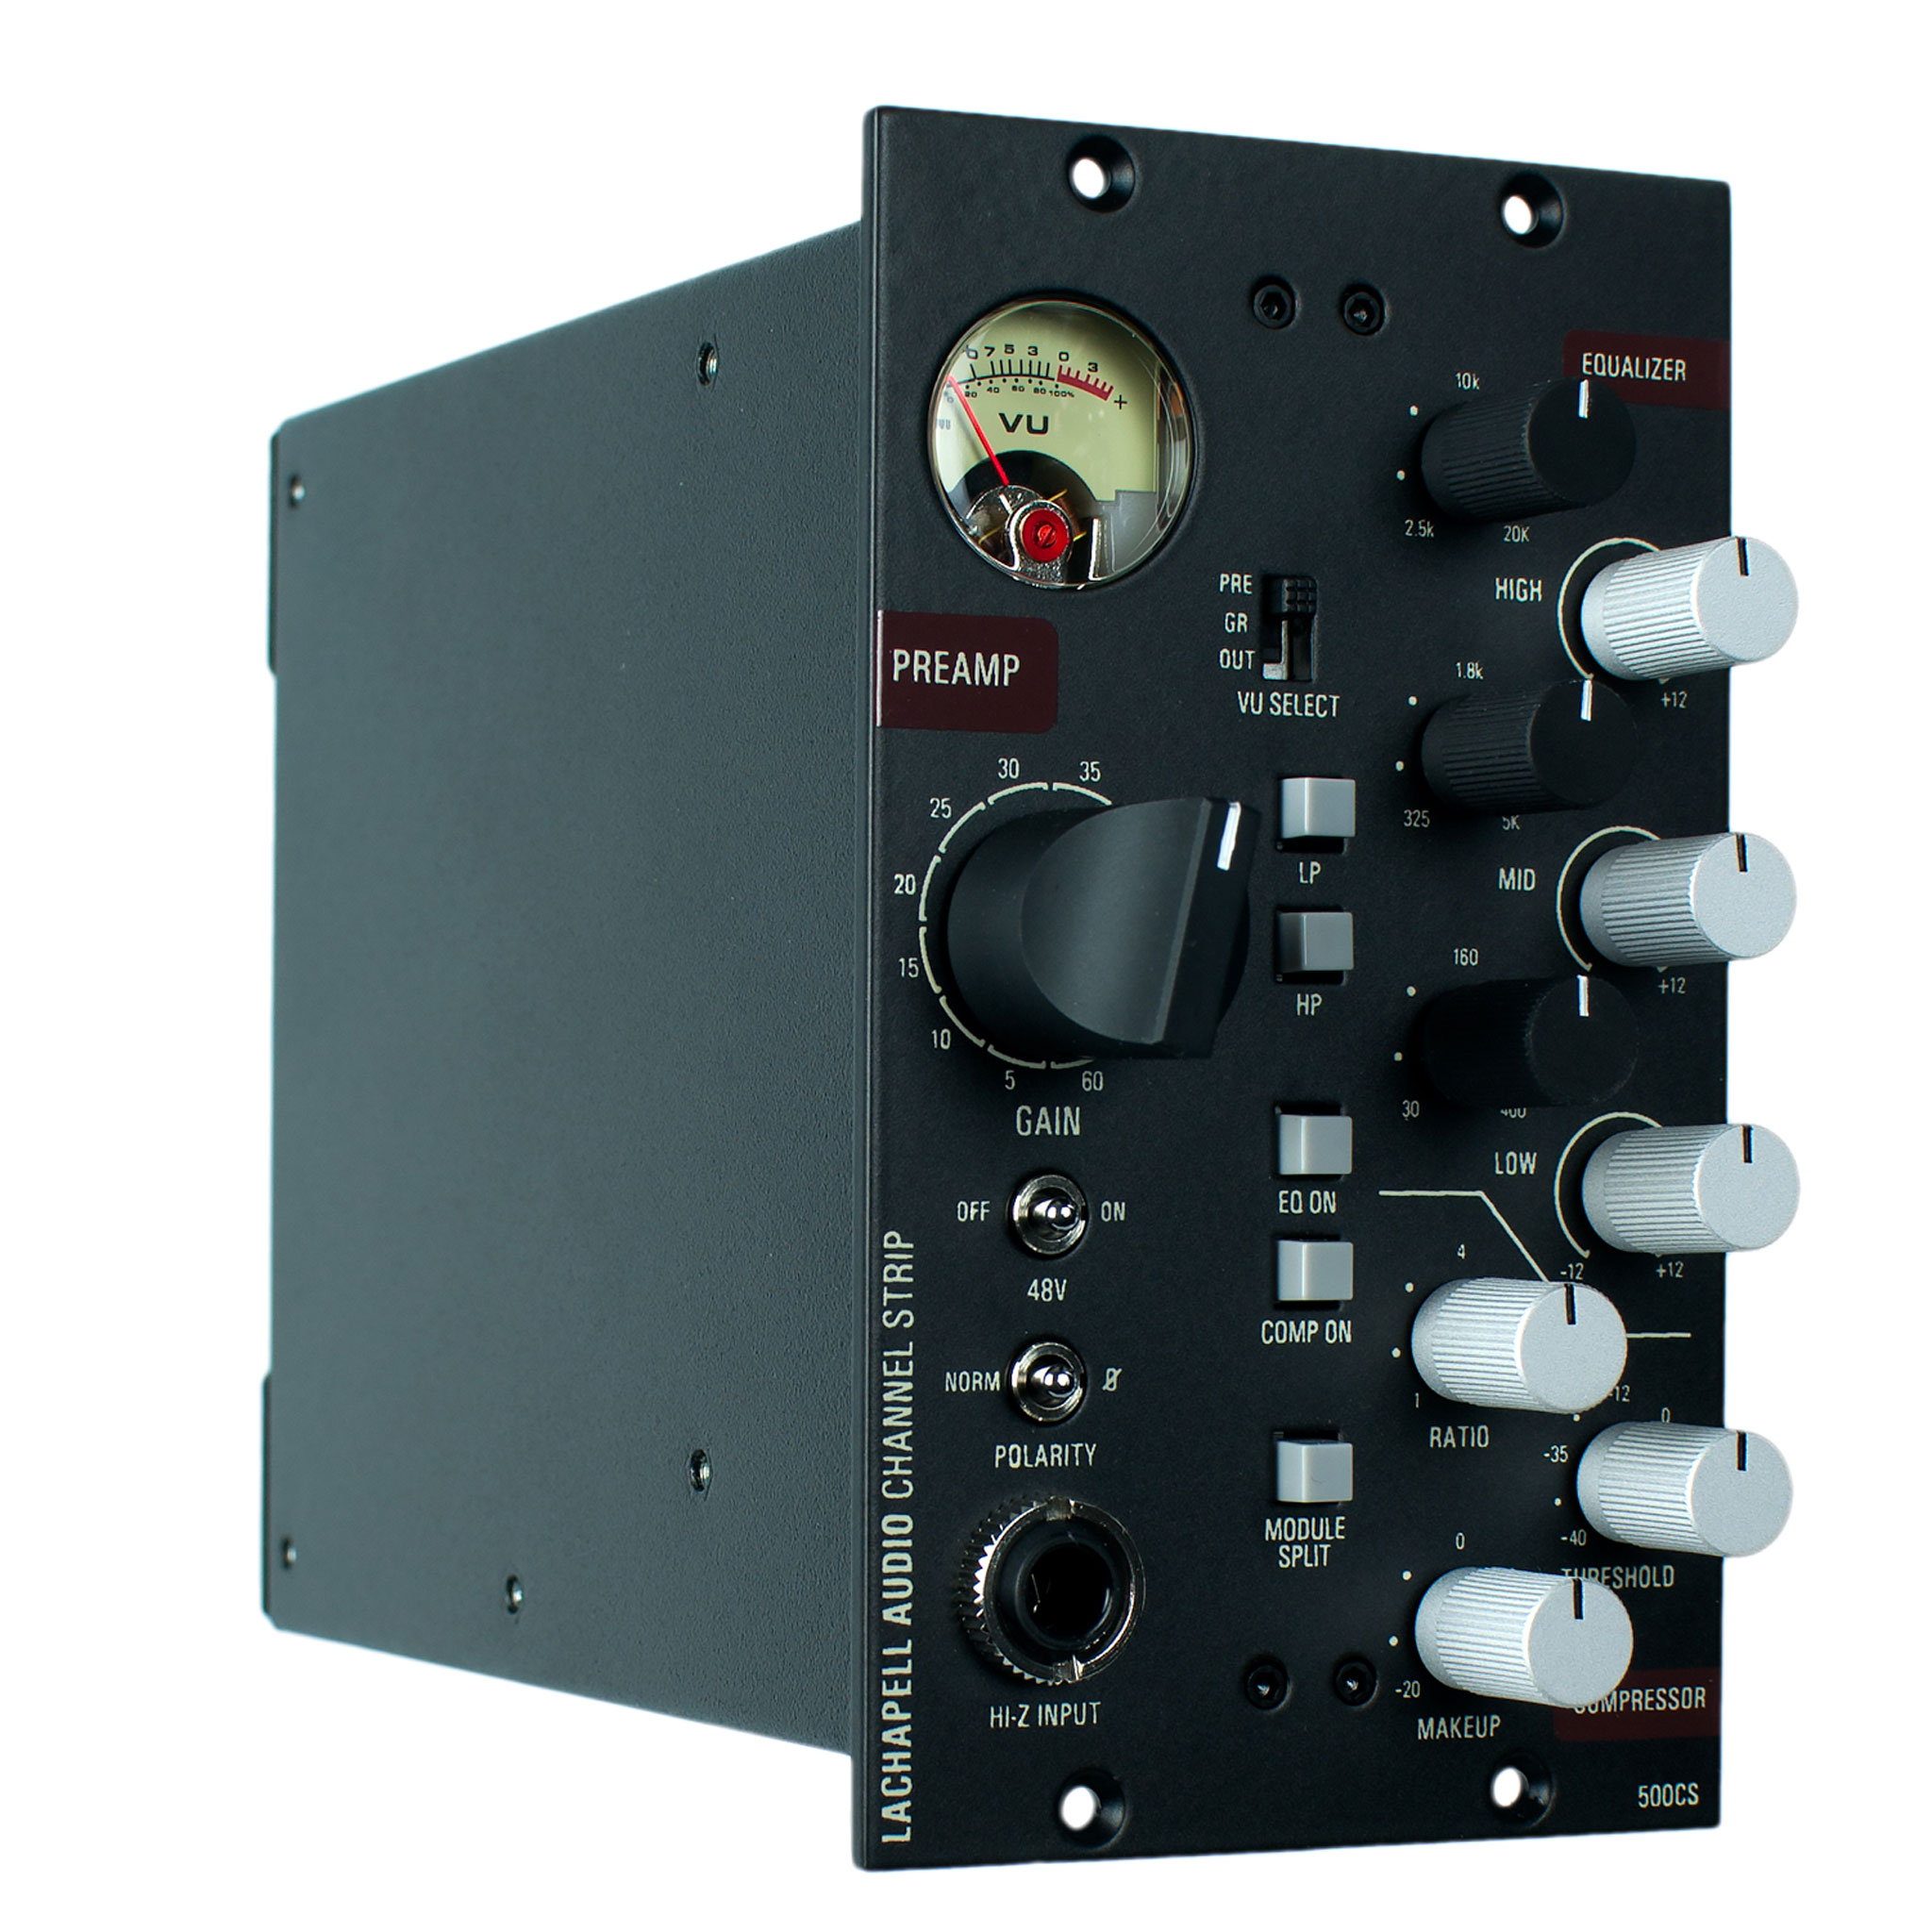 LaChapell Audio 500CS Channel Strip with microphone preamplifier, EQ and compressor - Angle View